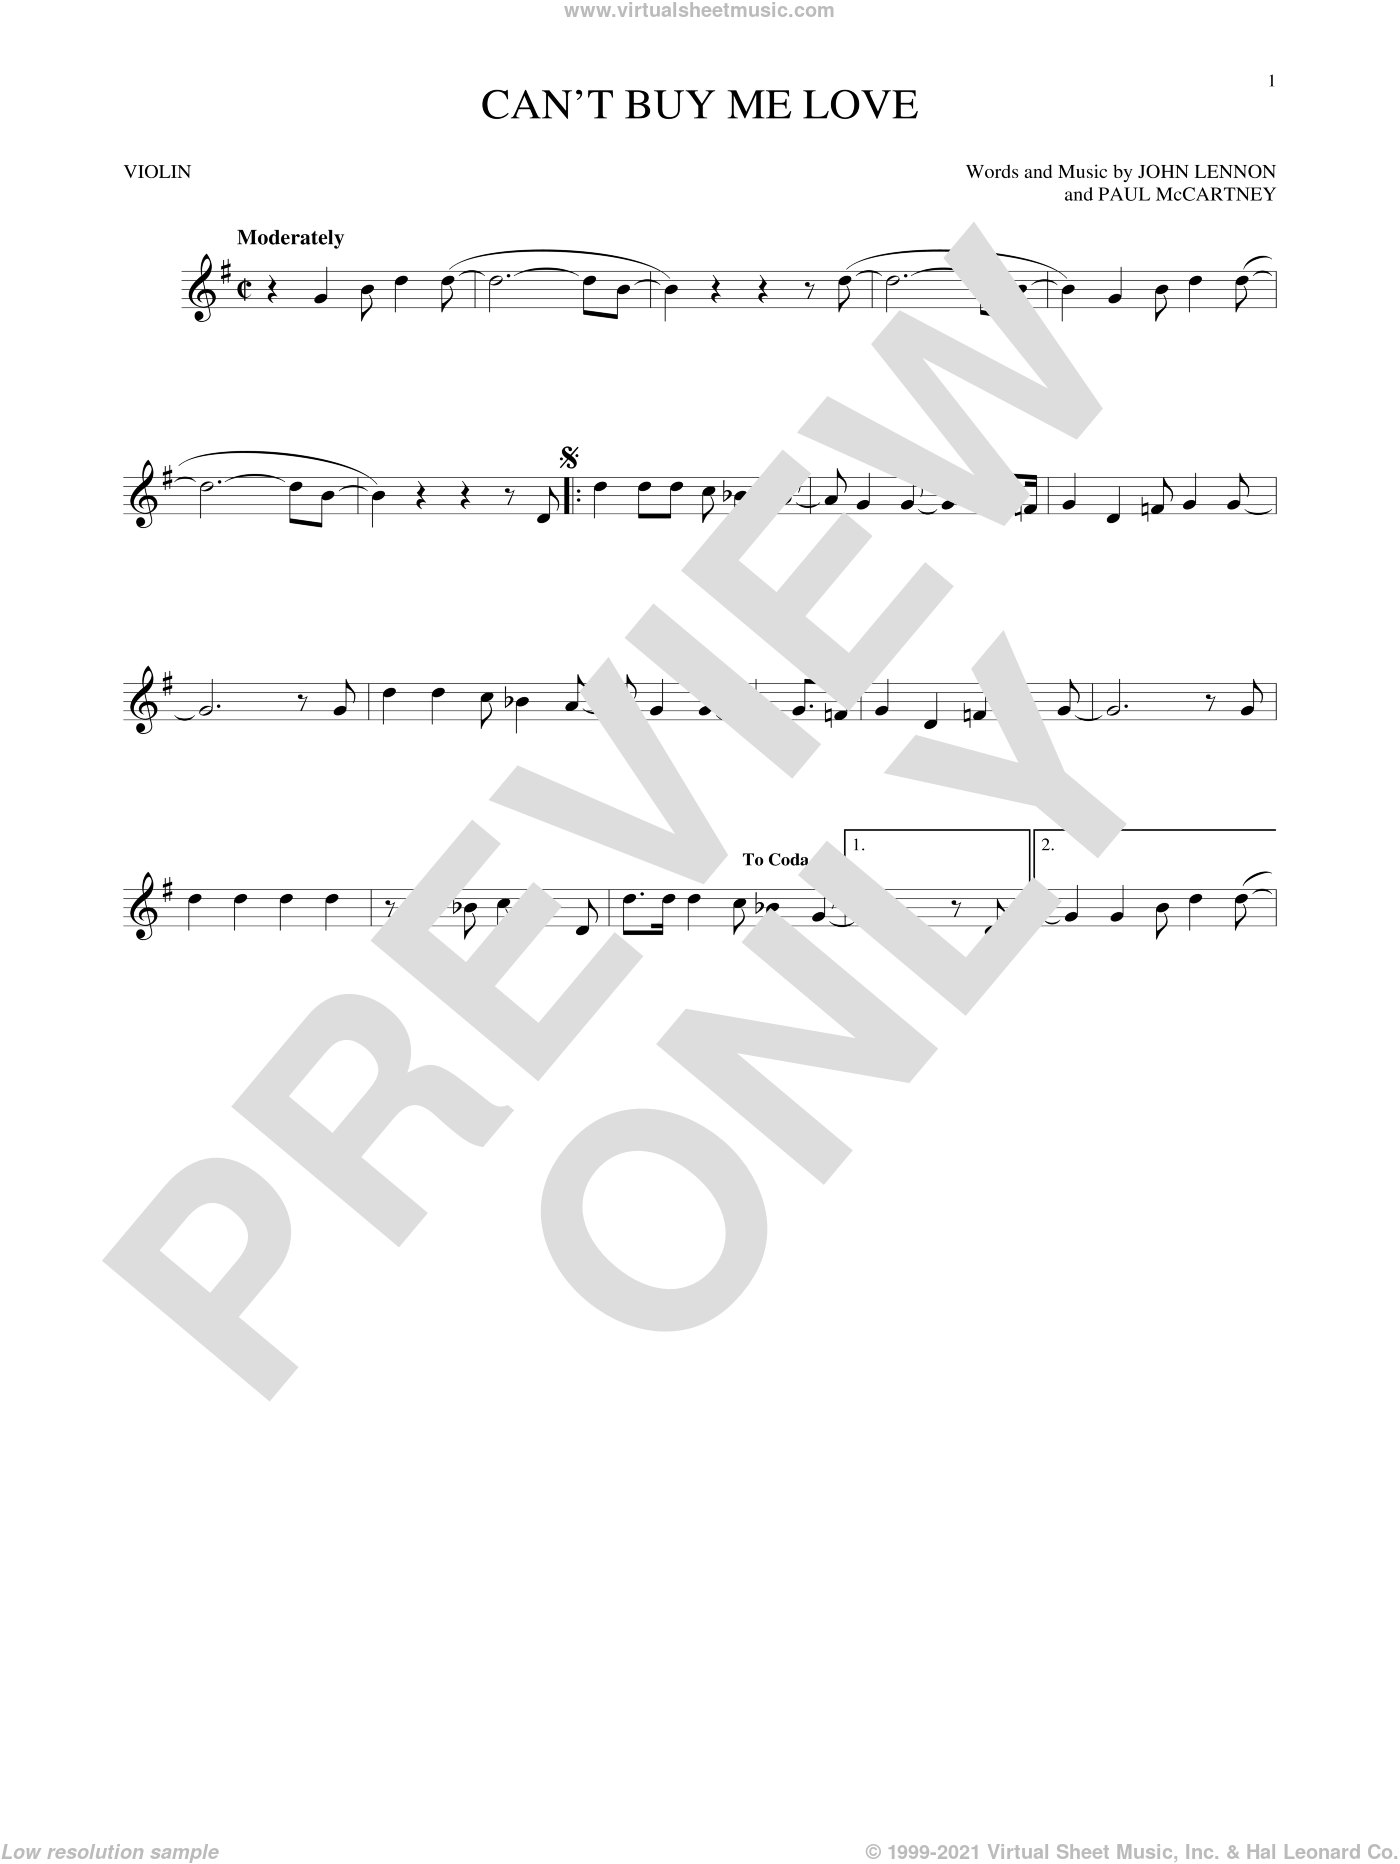 Can't Buy Me Love sheet music for violin solo by Paul McCartney